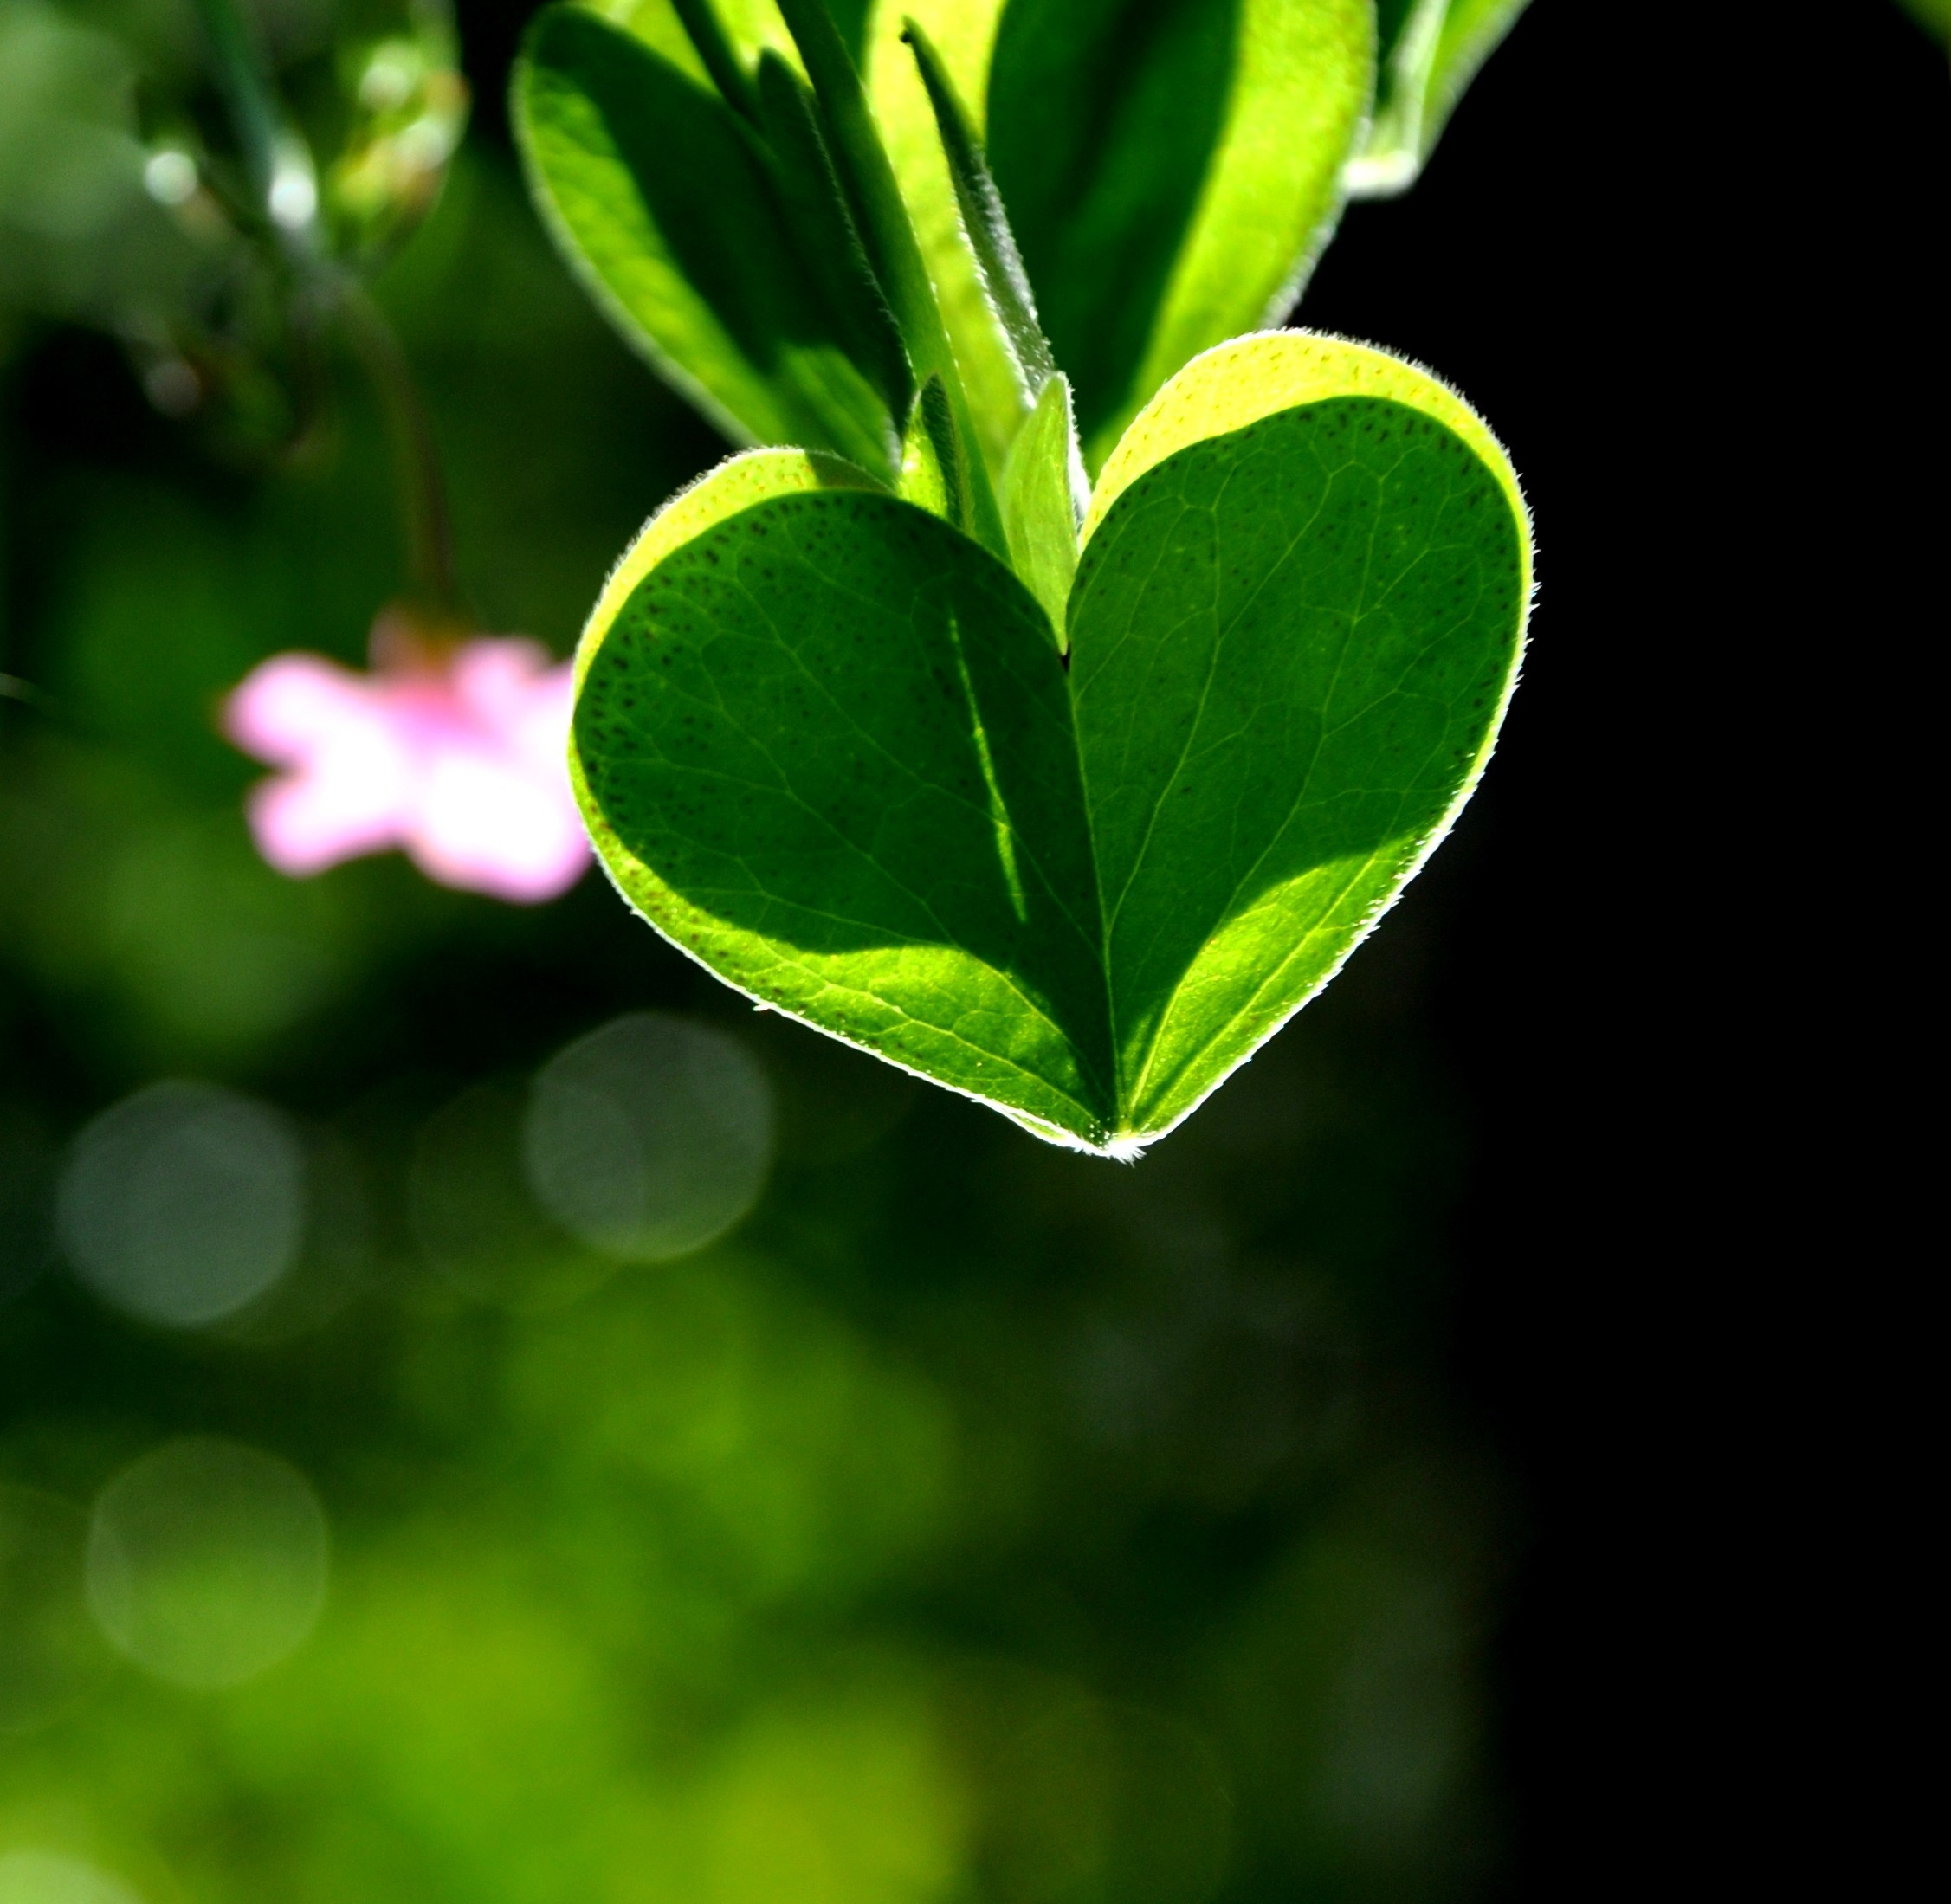 Green nature Hearts HD Wallpaper